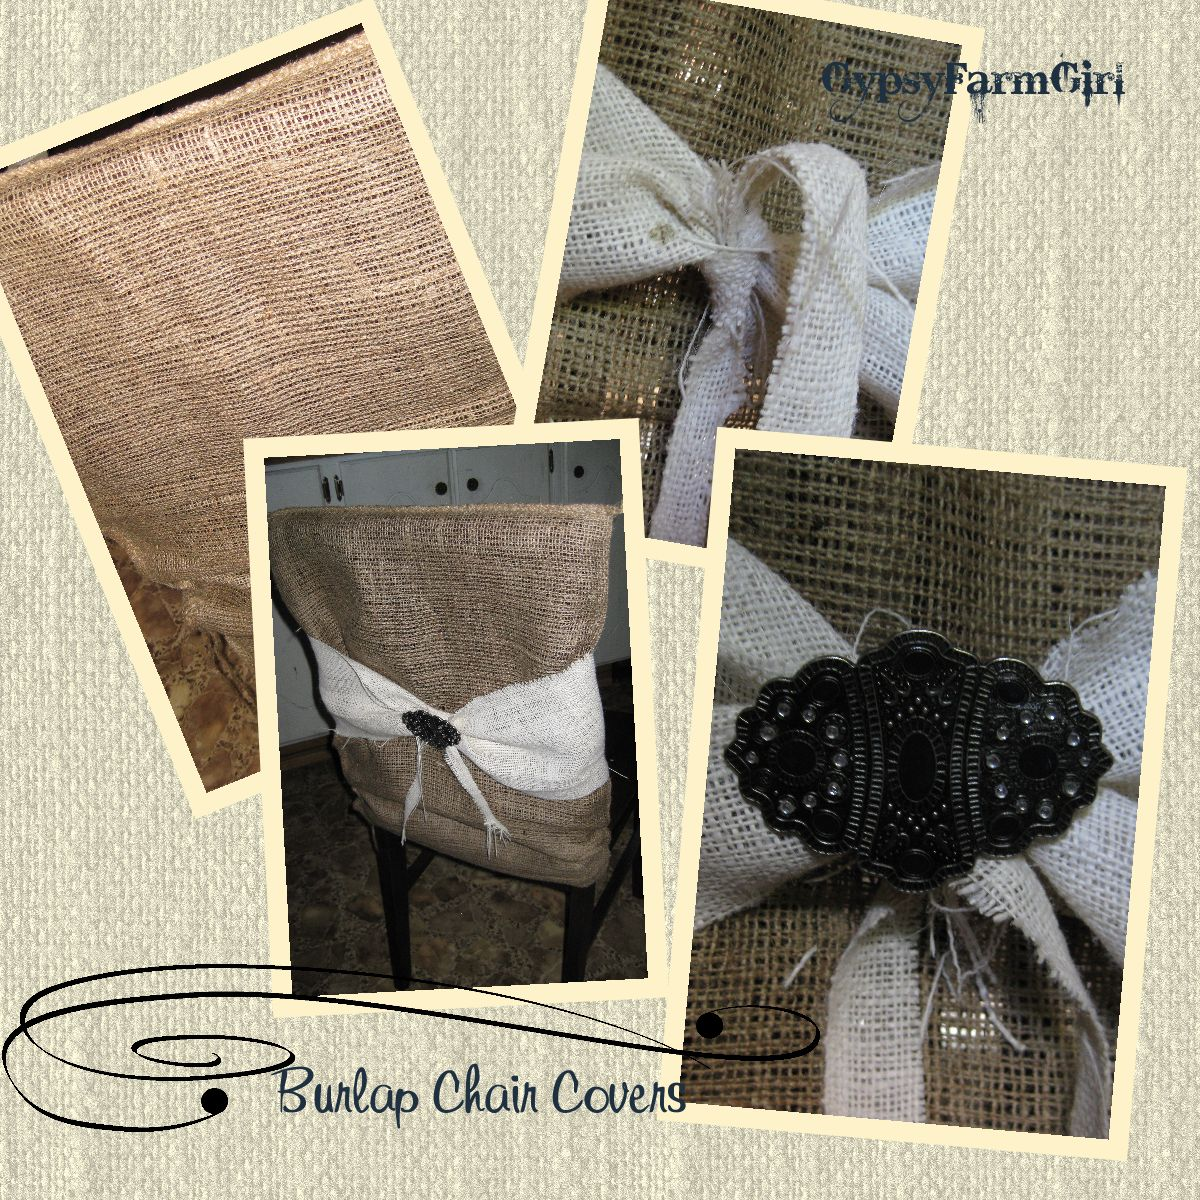 burlap chair covers for folding chairs metal armchair gypsyfarmgirl and beltbuckle